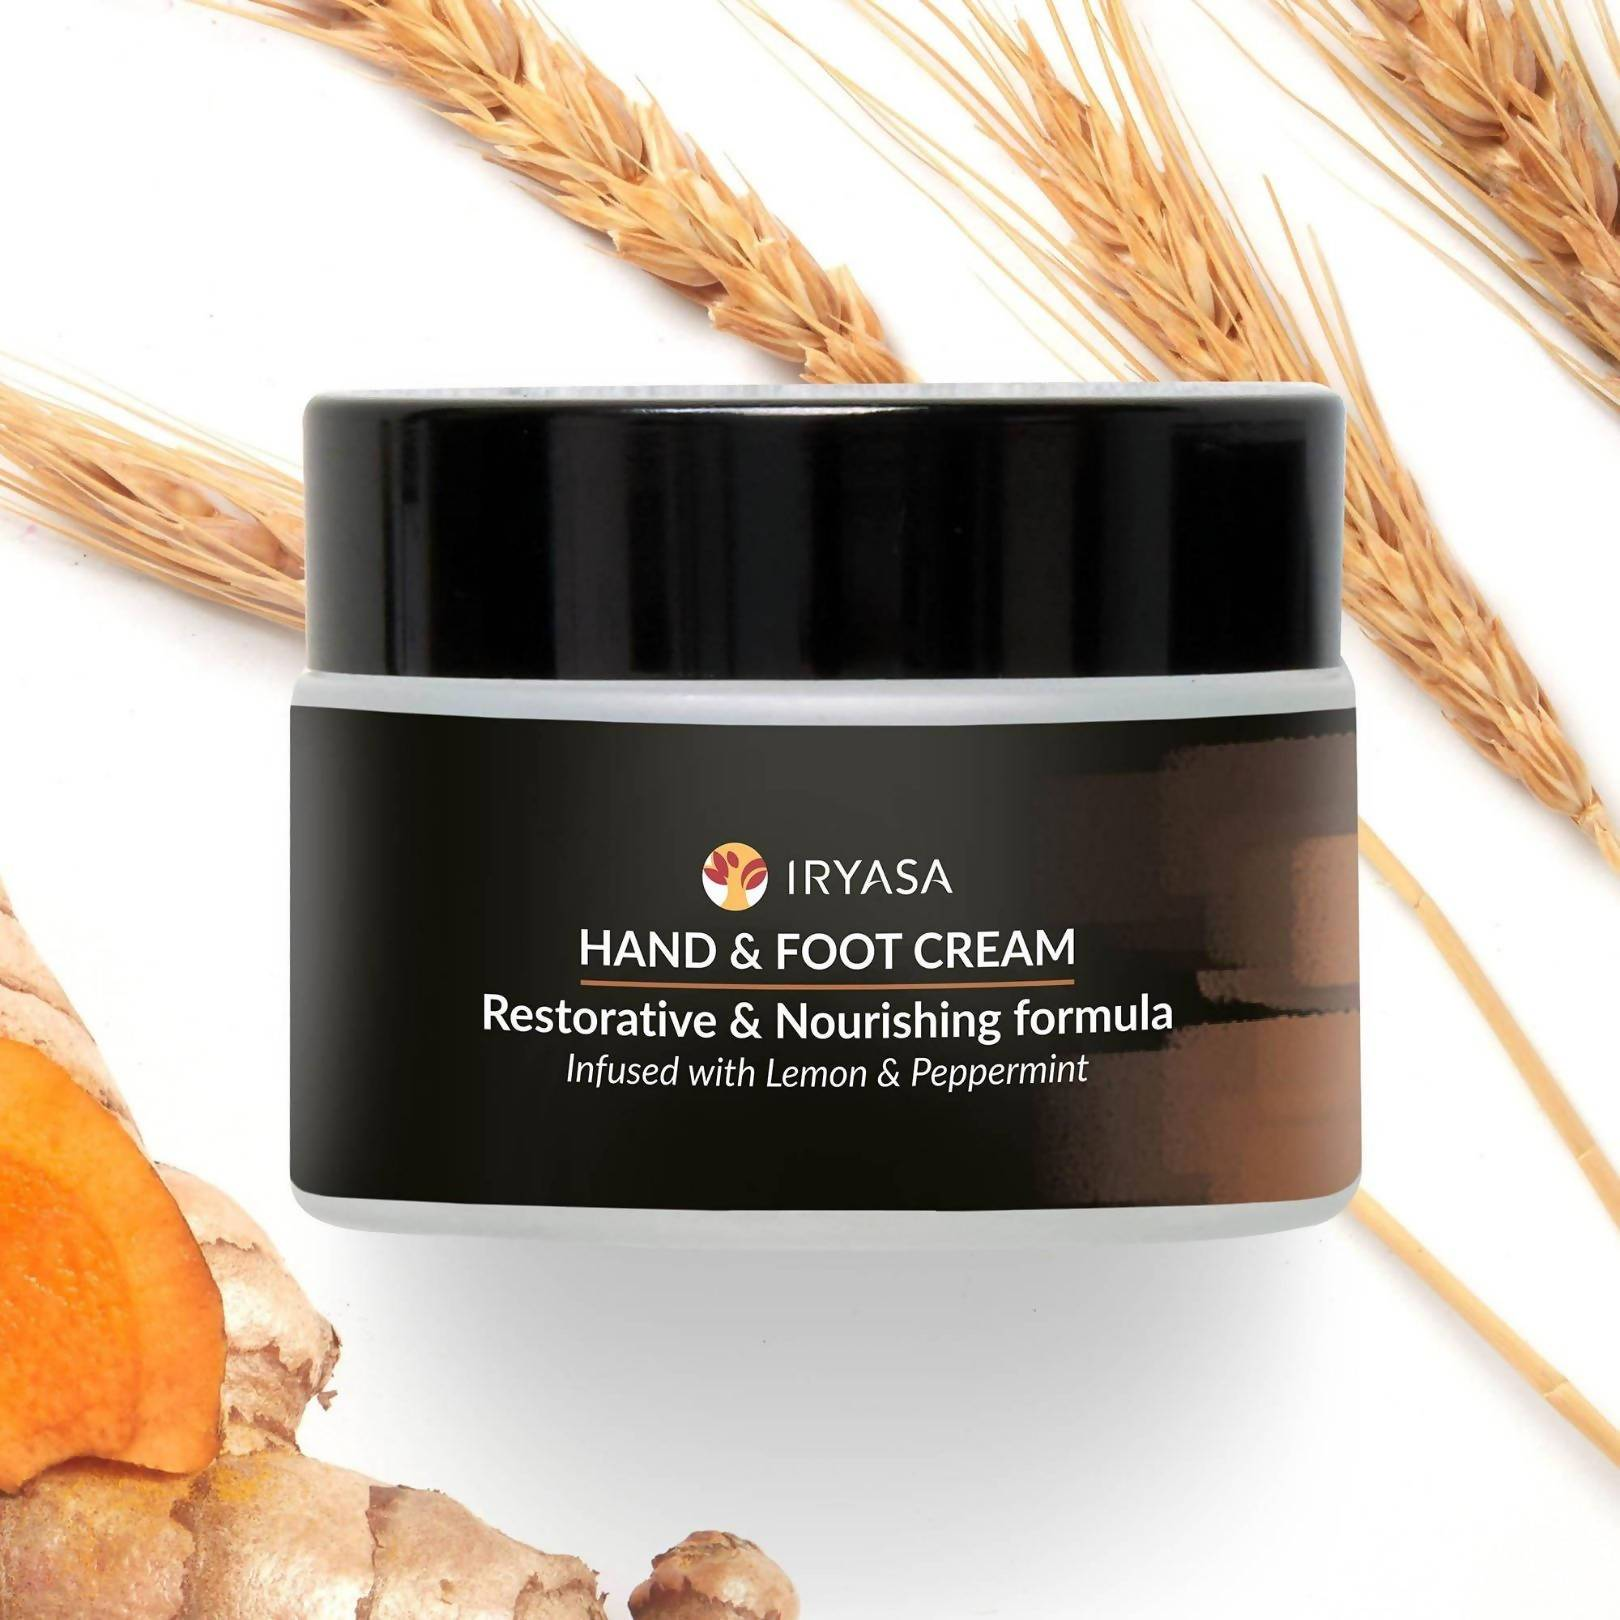 Hand & Foot Cream - Hand Creams - Iryasa - Naiise